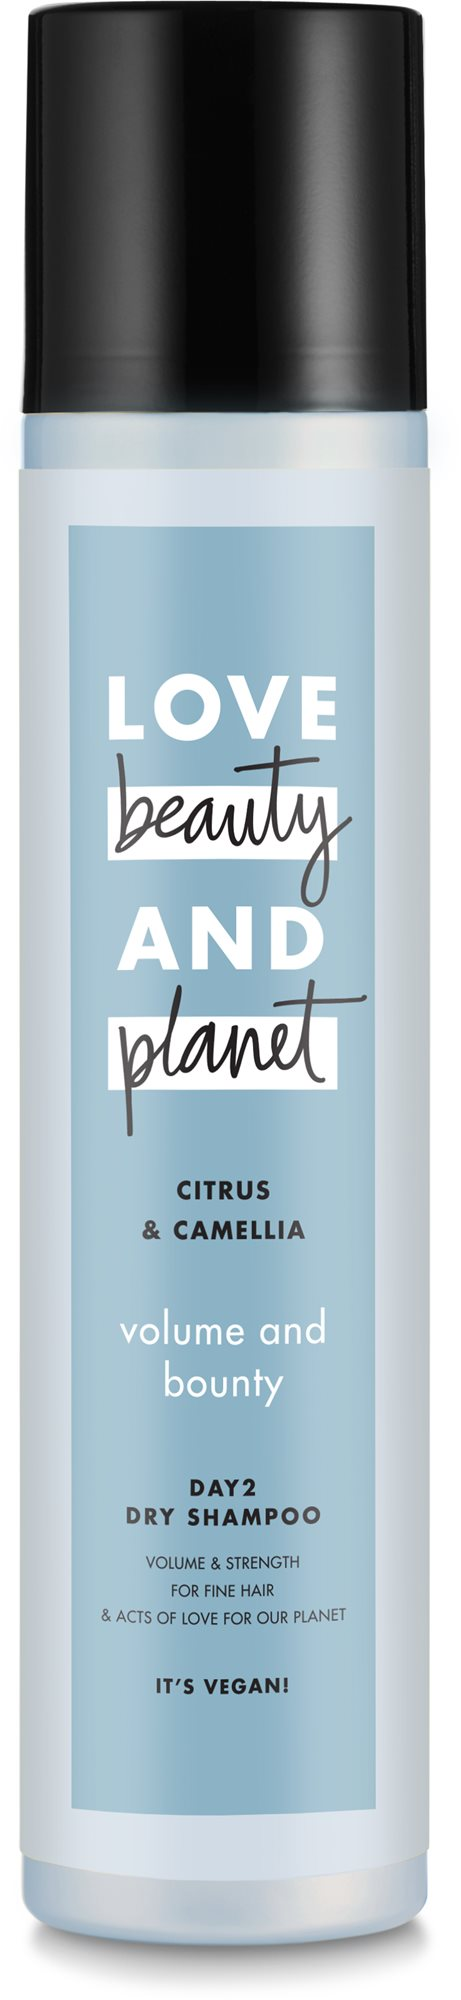 LOVE BEAUTY AND PLANET Volume and Bounty Dry Shampoo 245 ml